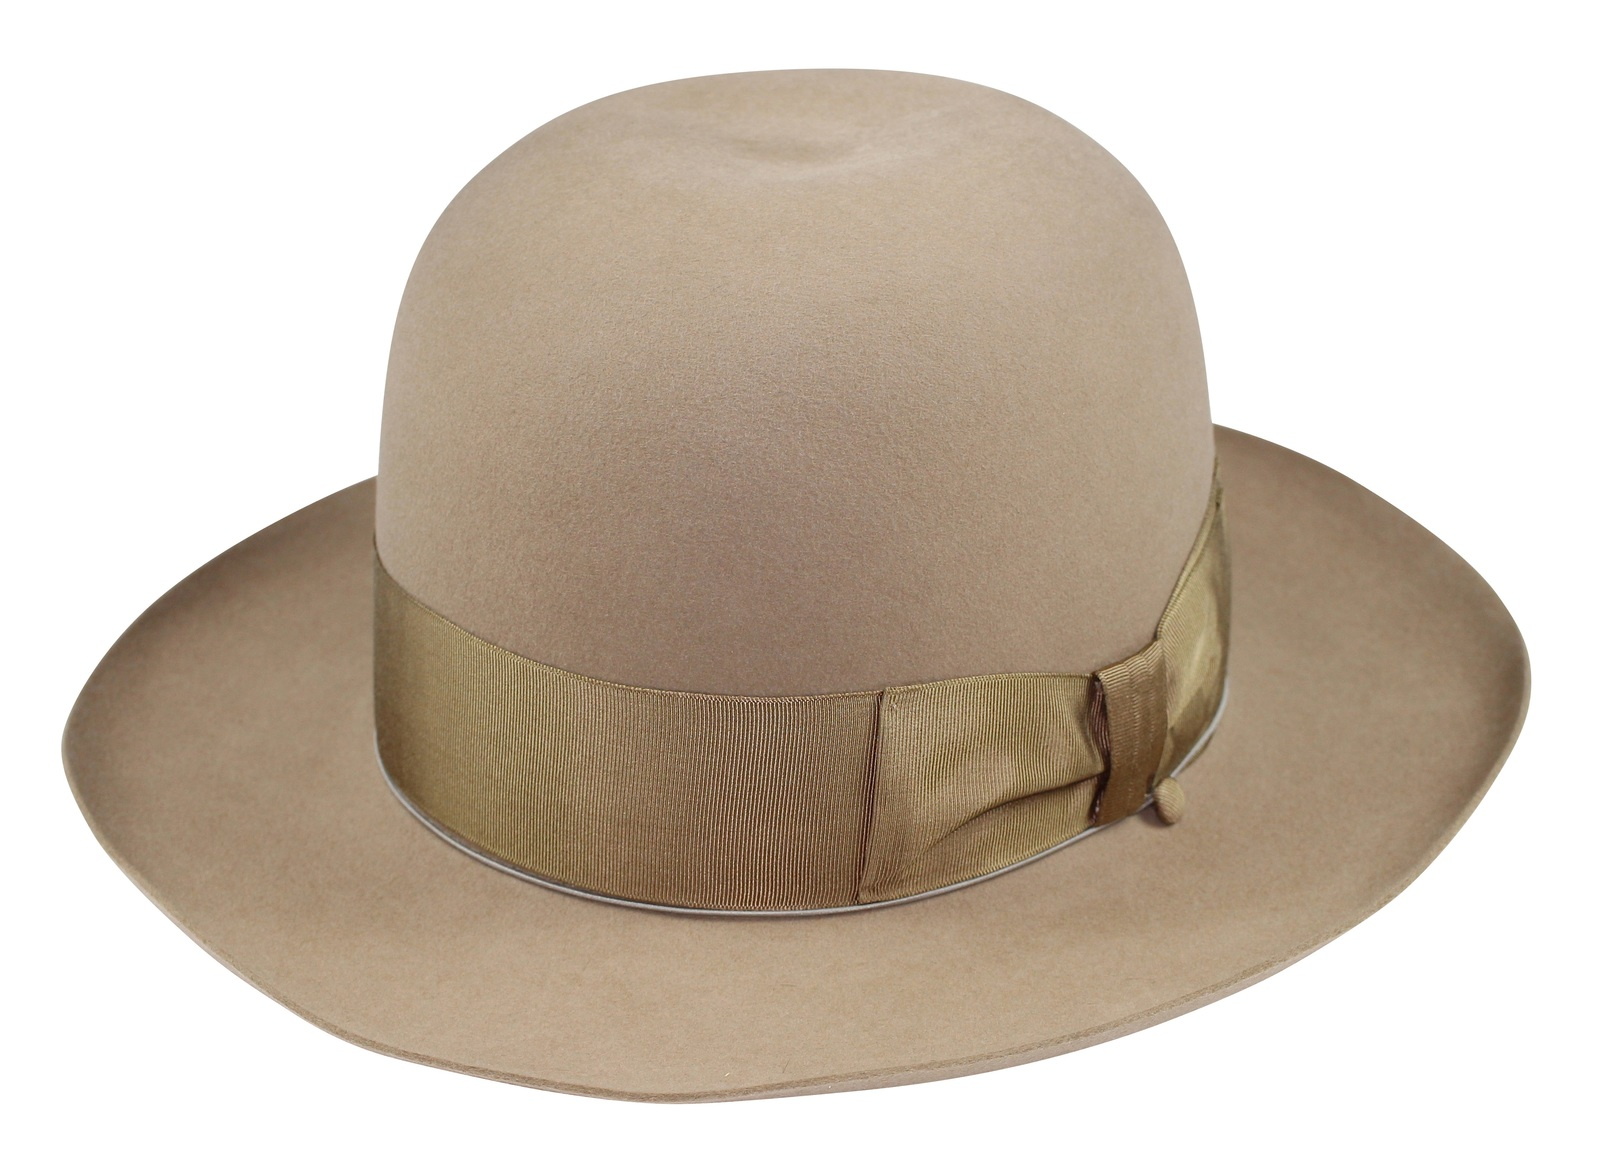 GLAD HAND & Co. [-HAT JOHN G- BEIGE size.7 1/4,7 3/8, 7 1/2, 7 5/8]